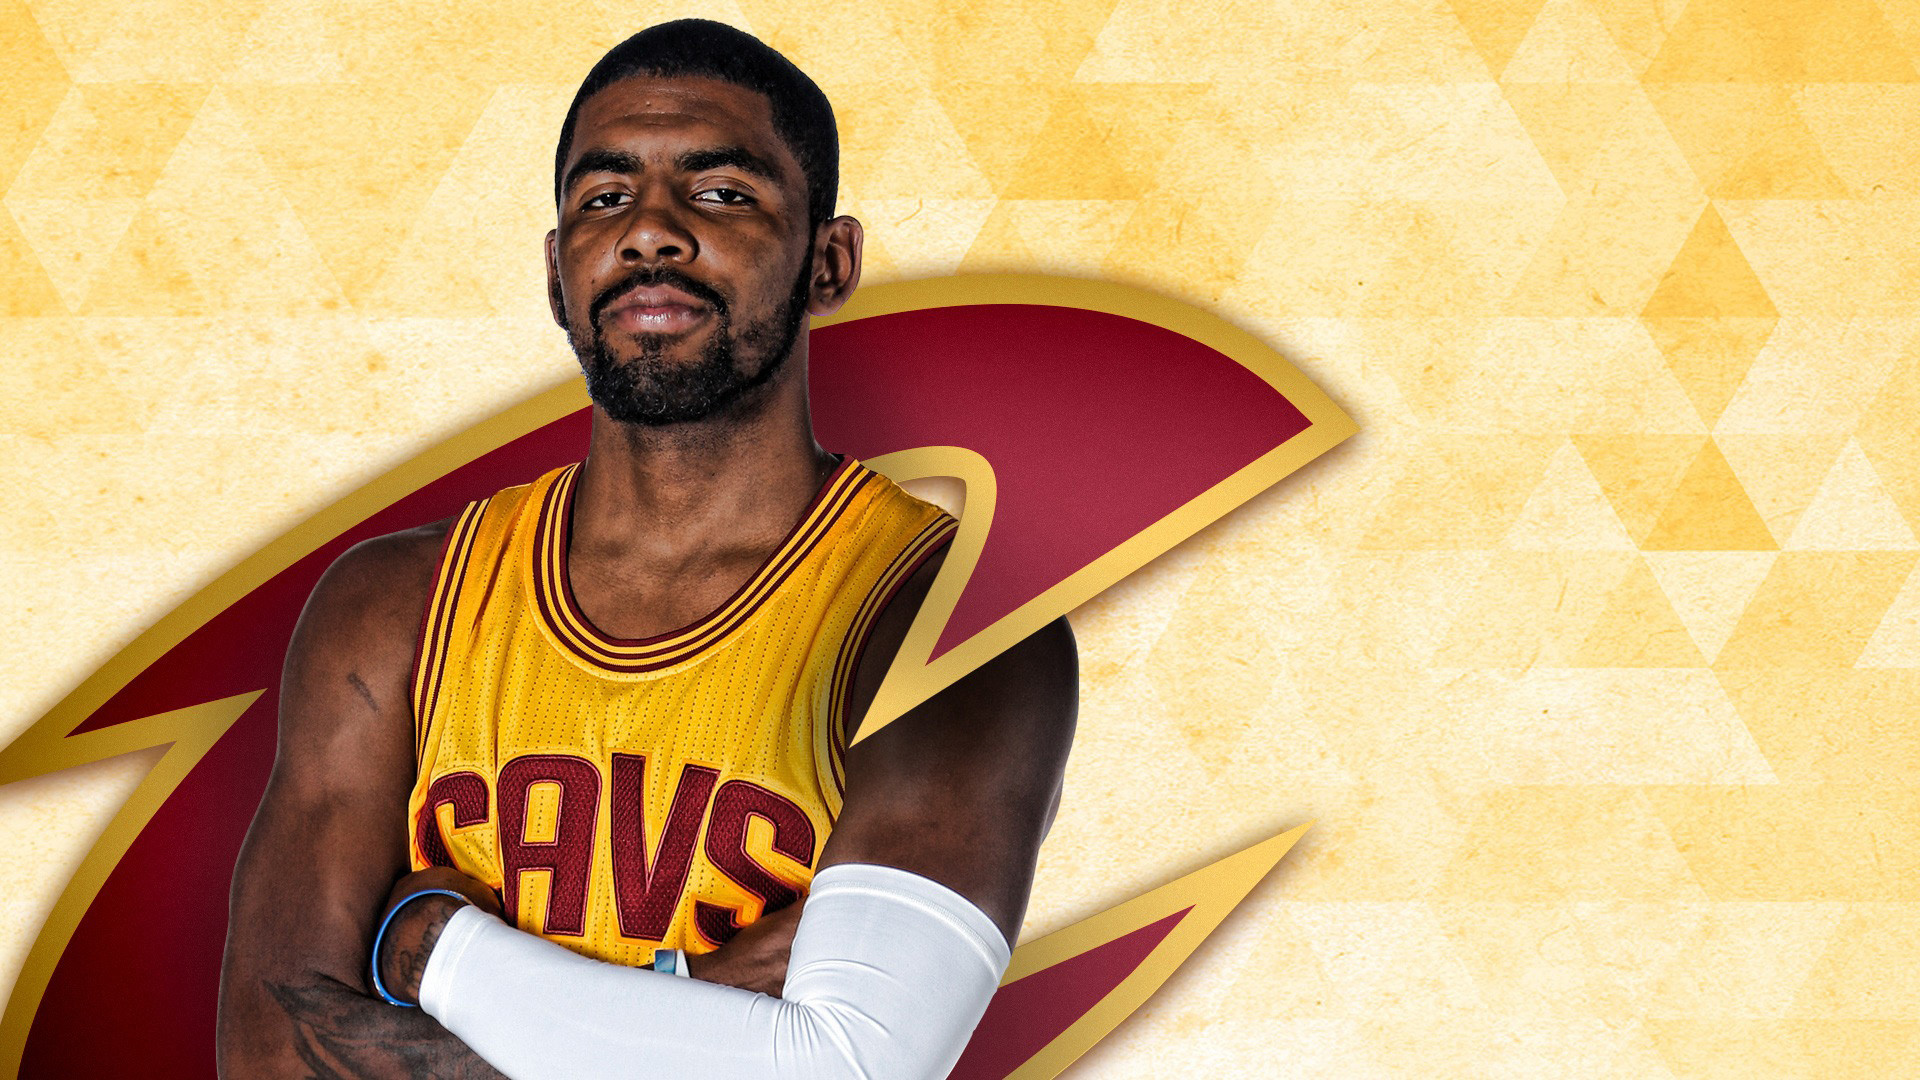 1920x1080 Kyrie Irving Wallpapers HD New Collection 4